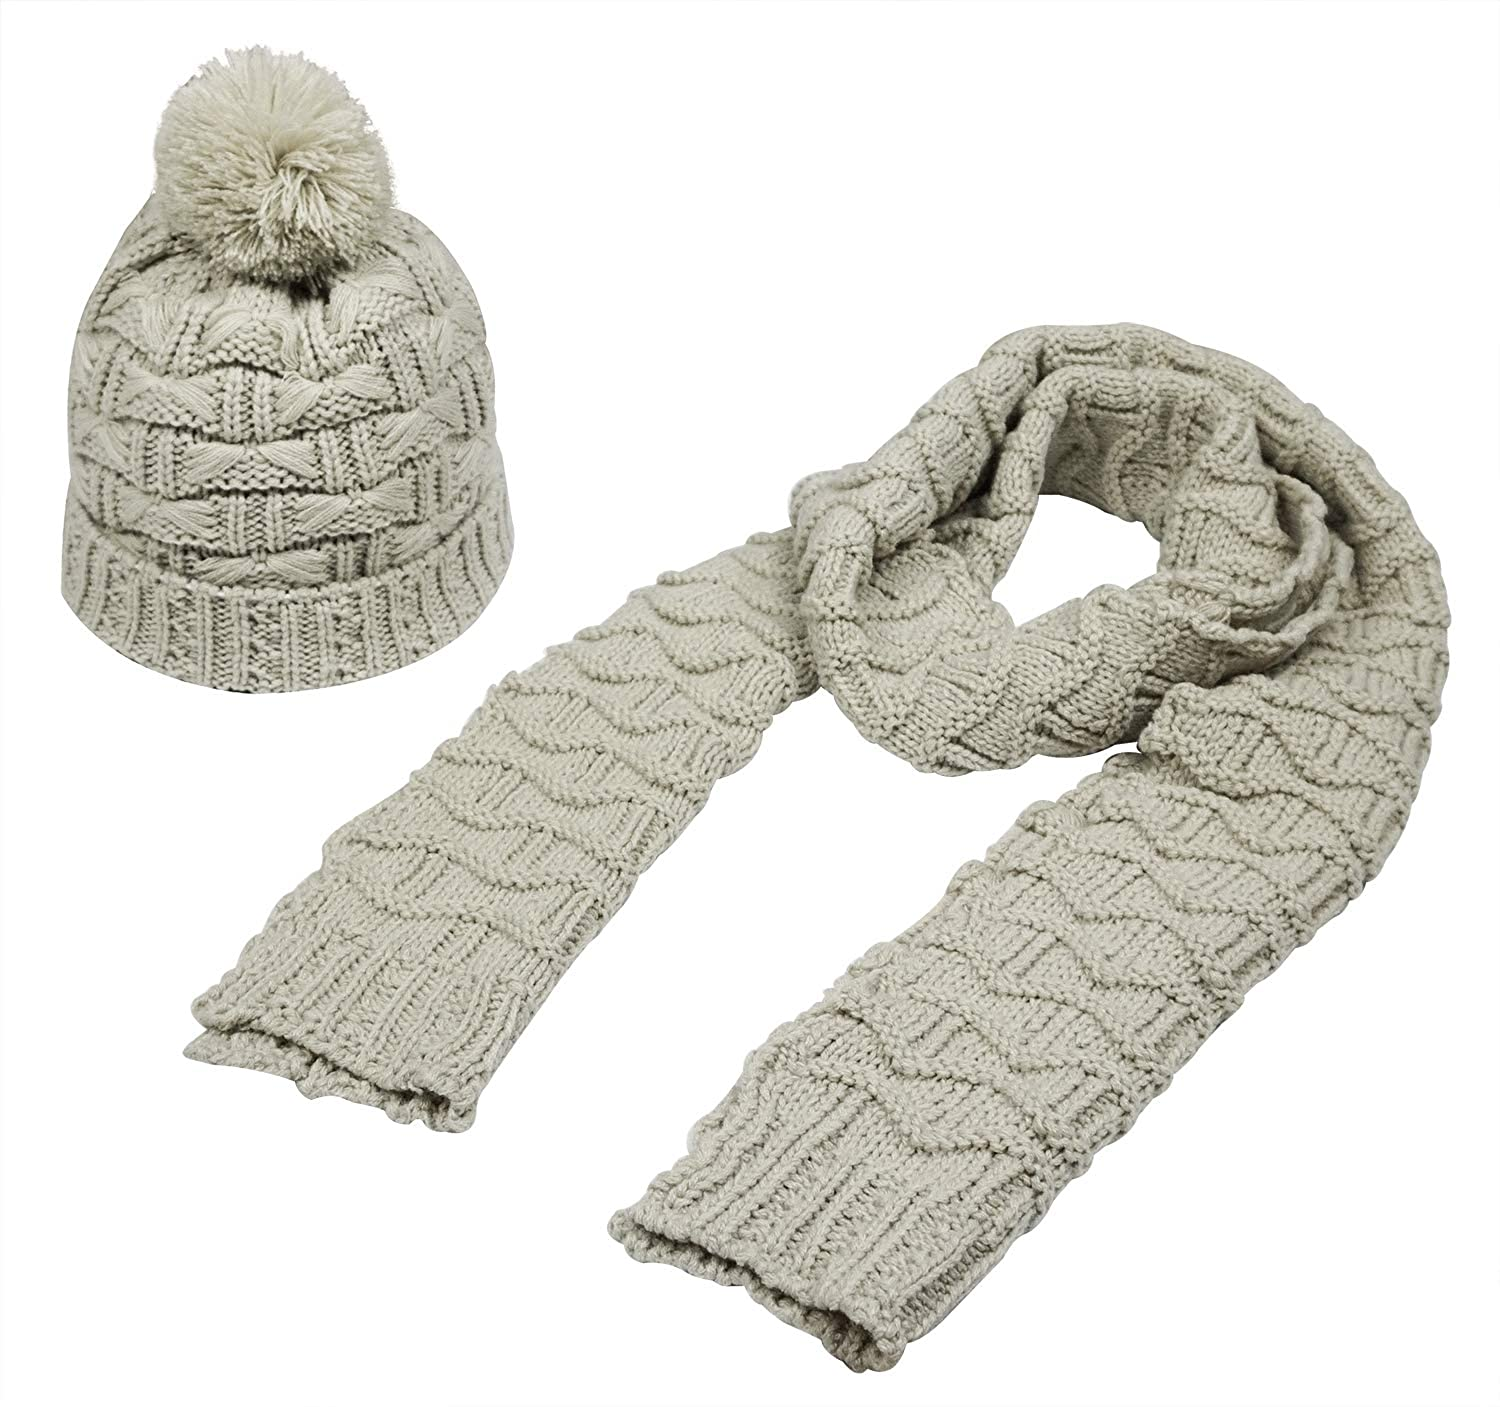 dd63cc0e5 Women Fashion Winter Warm Knitted Scarf and Hat Set Skullcaps